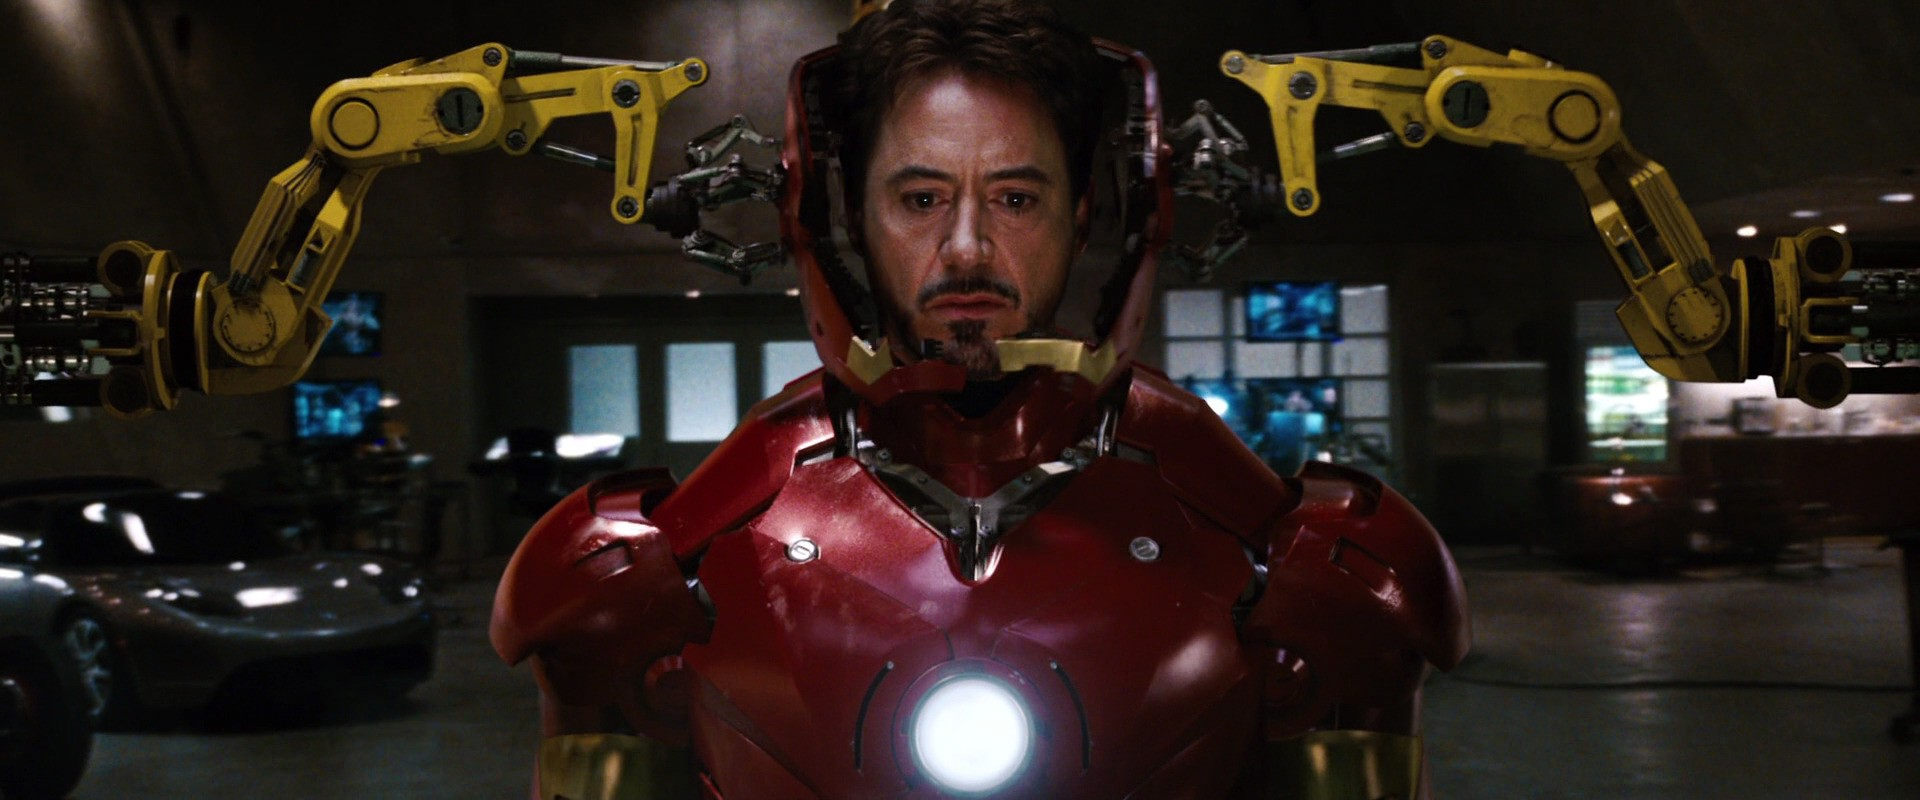 http://caps.pictures/200/8-iron-man1/full/iron-man1-movie-screencaps.com-9016.jpg